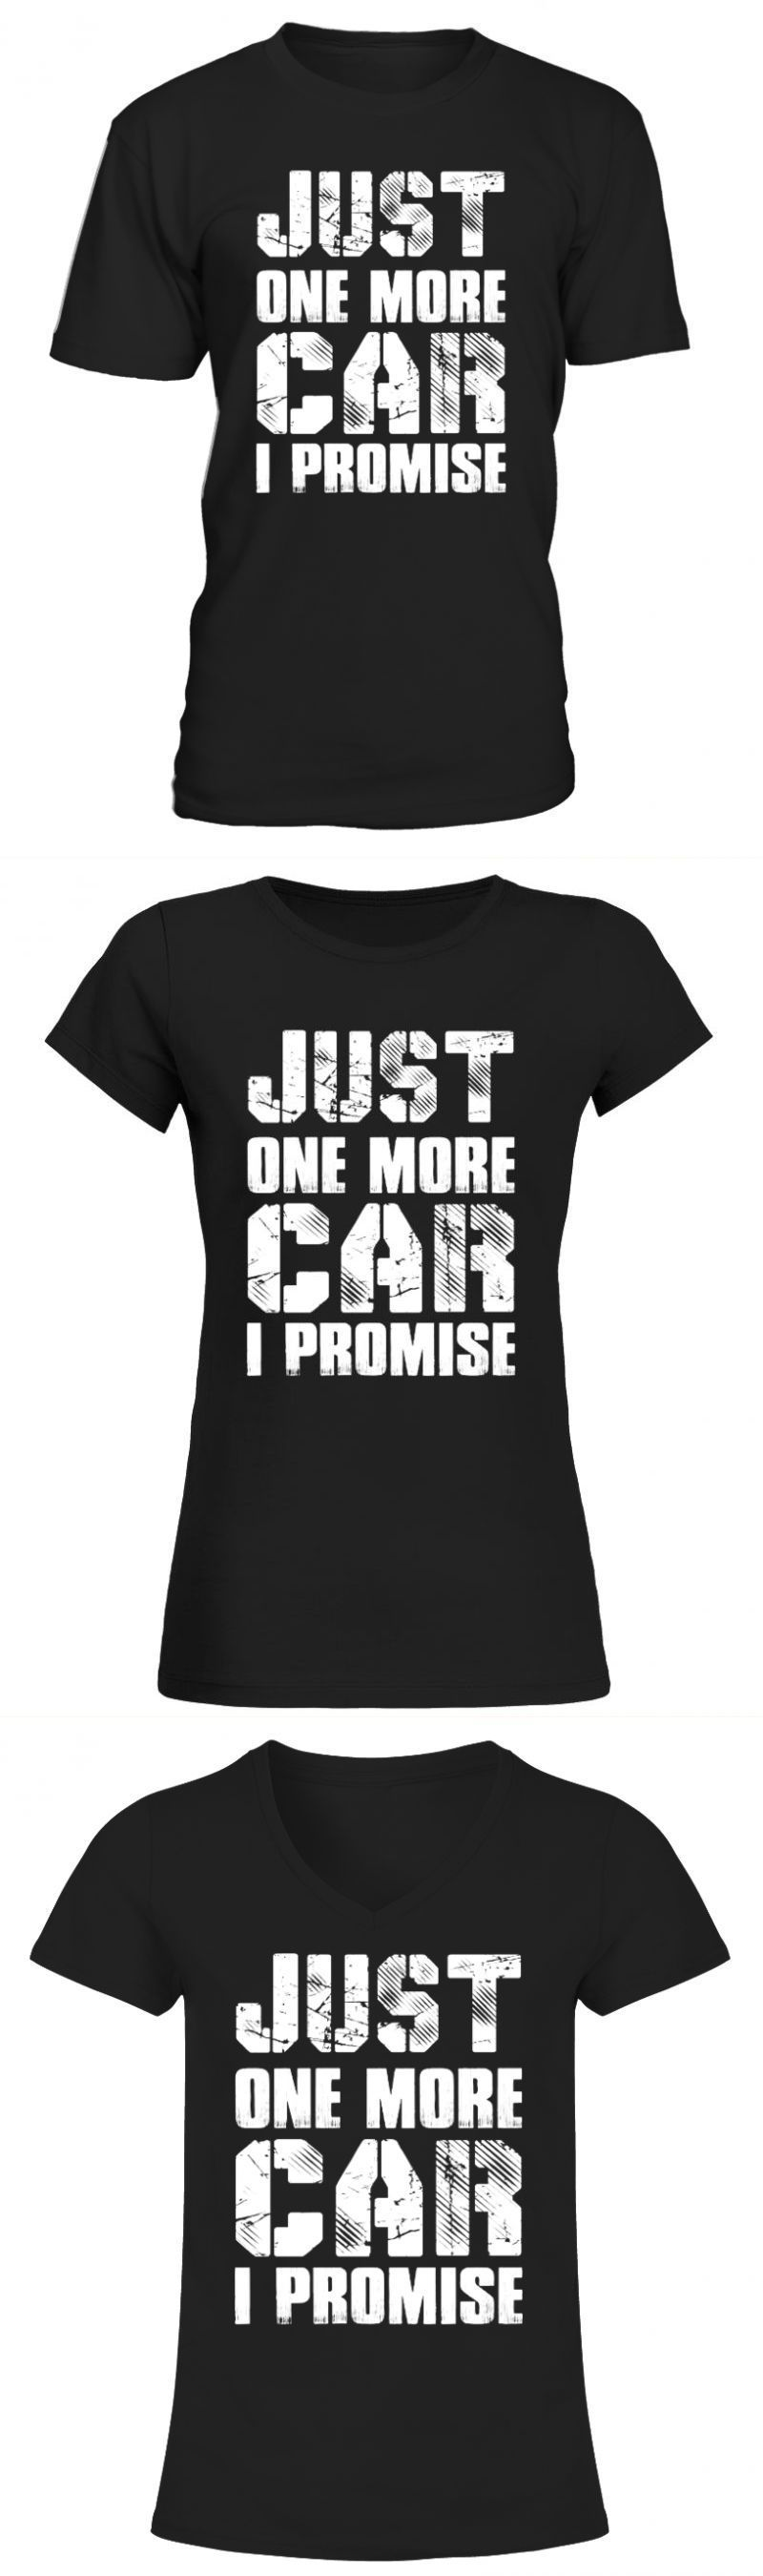 Volleyball Camp T Shirt Designs Just One More Car I Promise Shirt T Shirt For Volleyball Volleyball Shirt Designs Volleyball Va Shirts